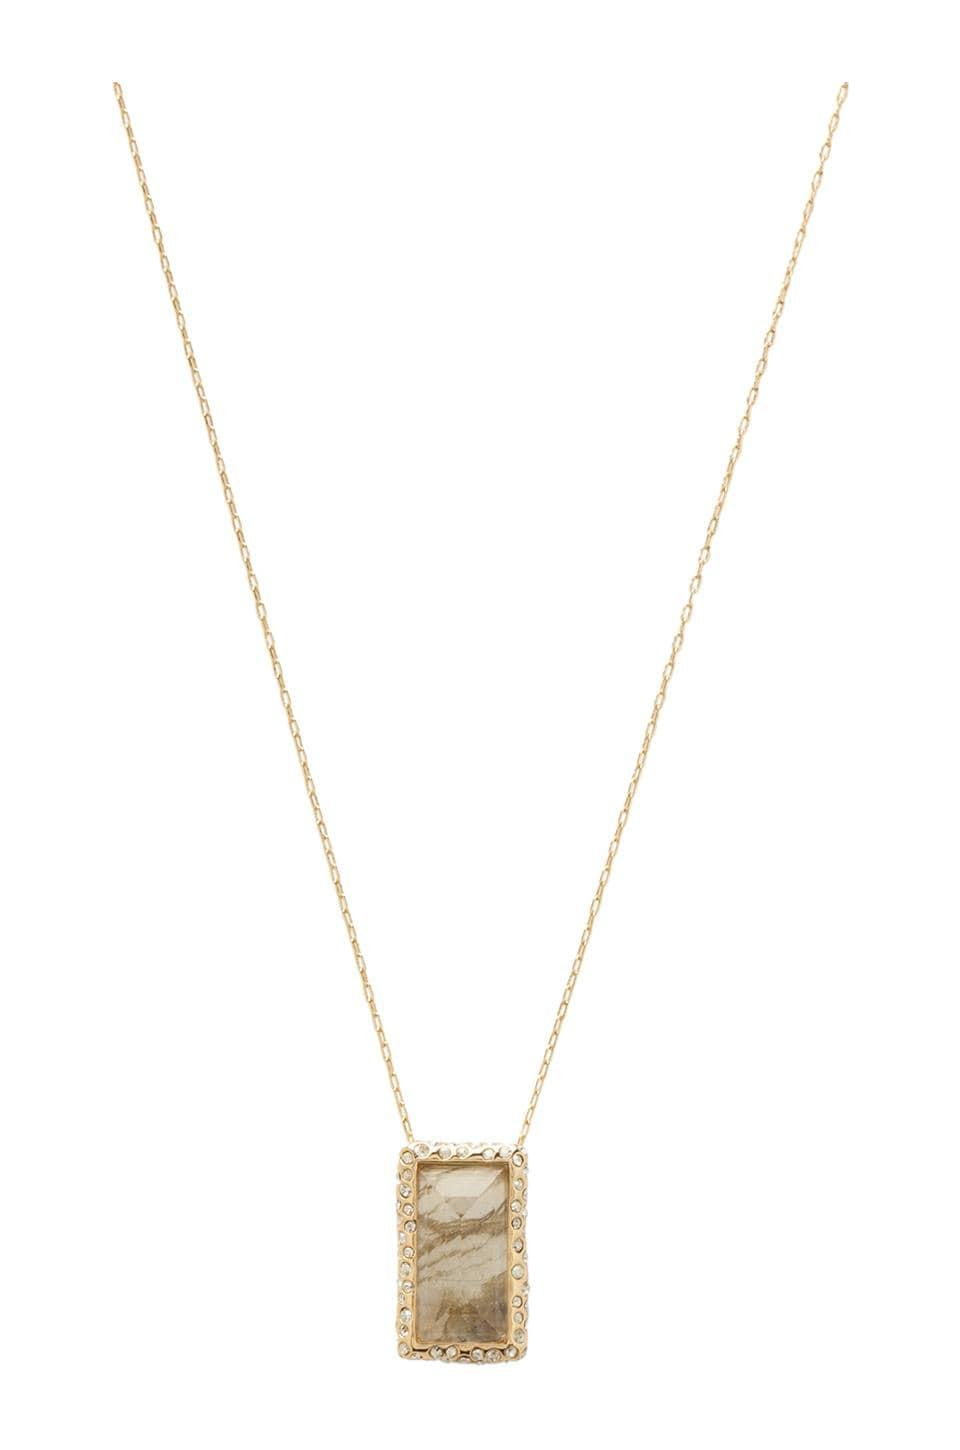 Alexis Bittar Framed Baguette Pendant Necklace in Lab Doublet